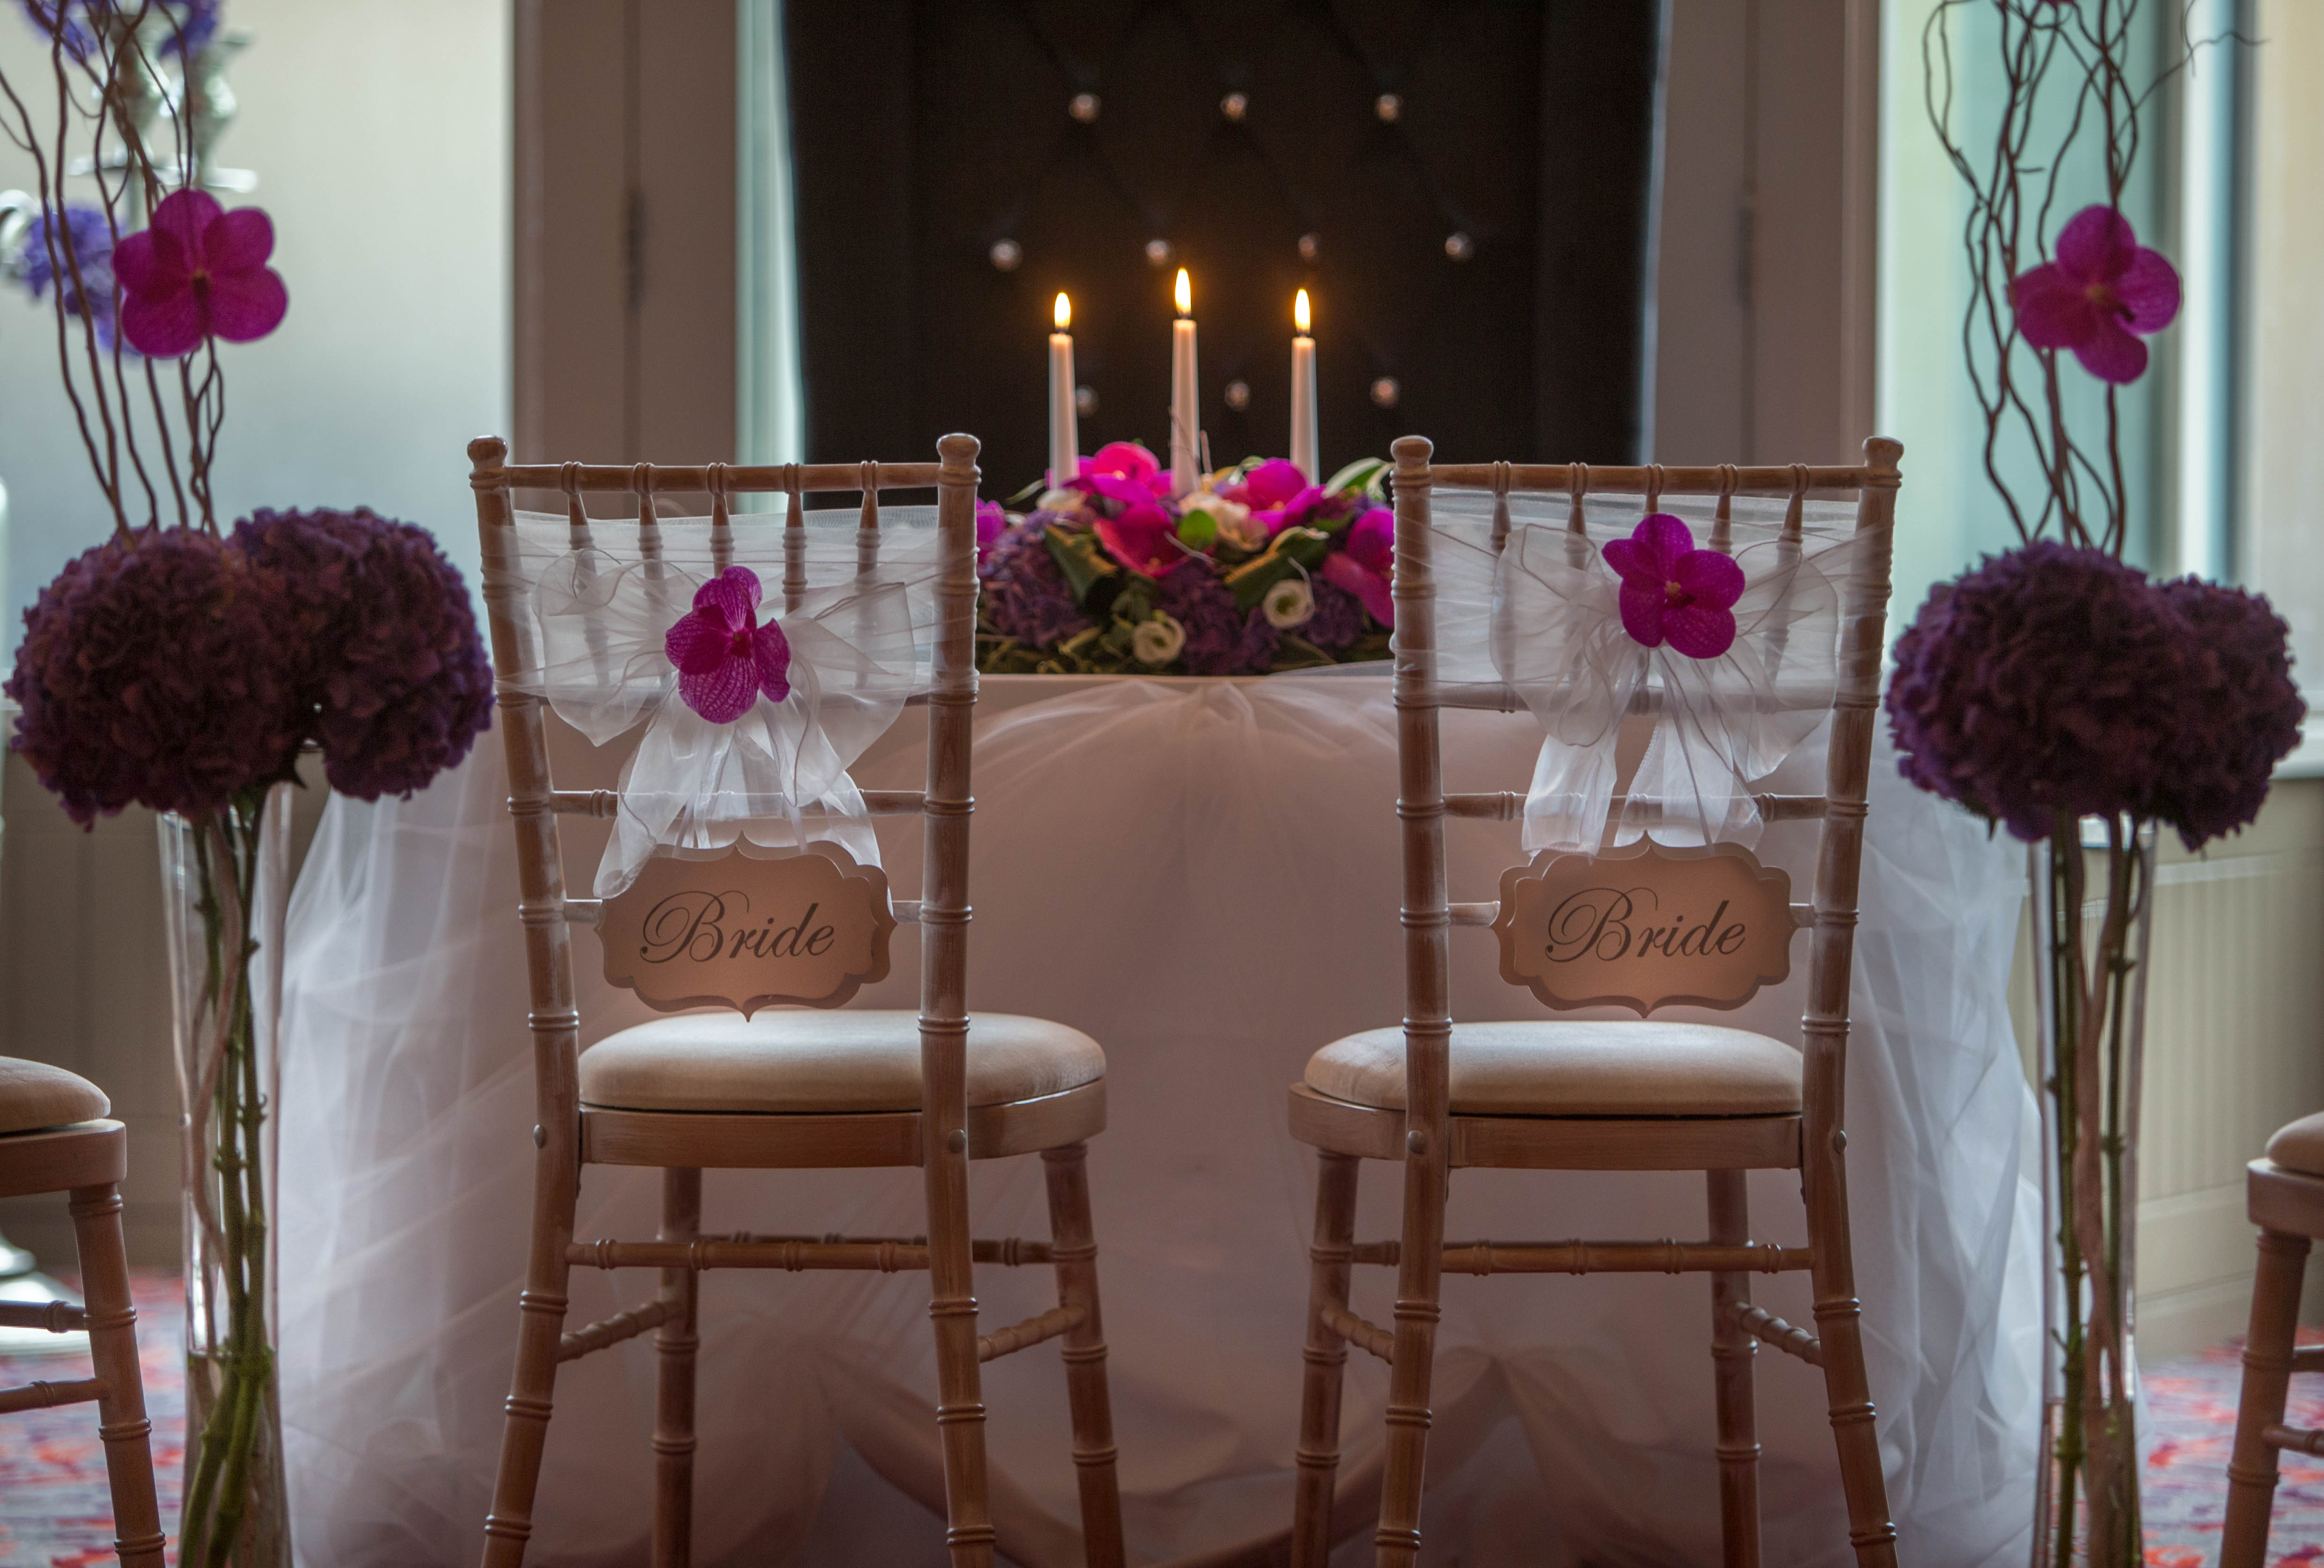 Trinity City Hotel with two Bride chairs where the Vintage Wedding Party will take place